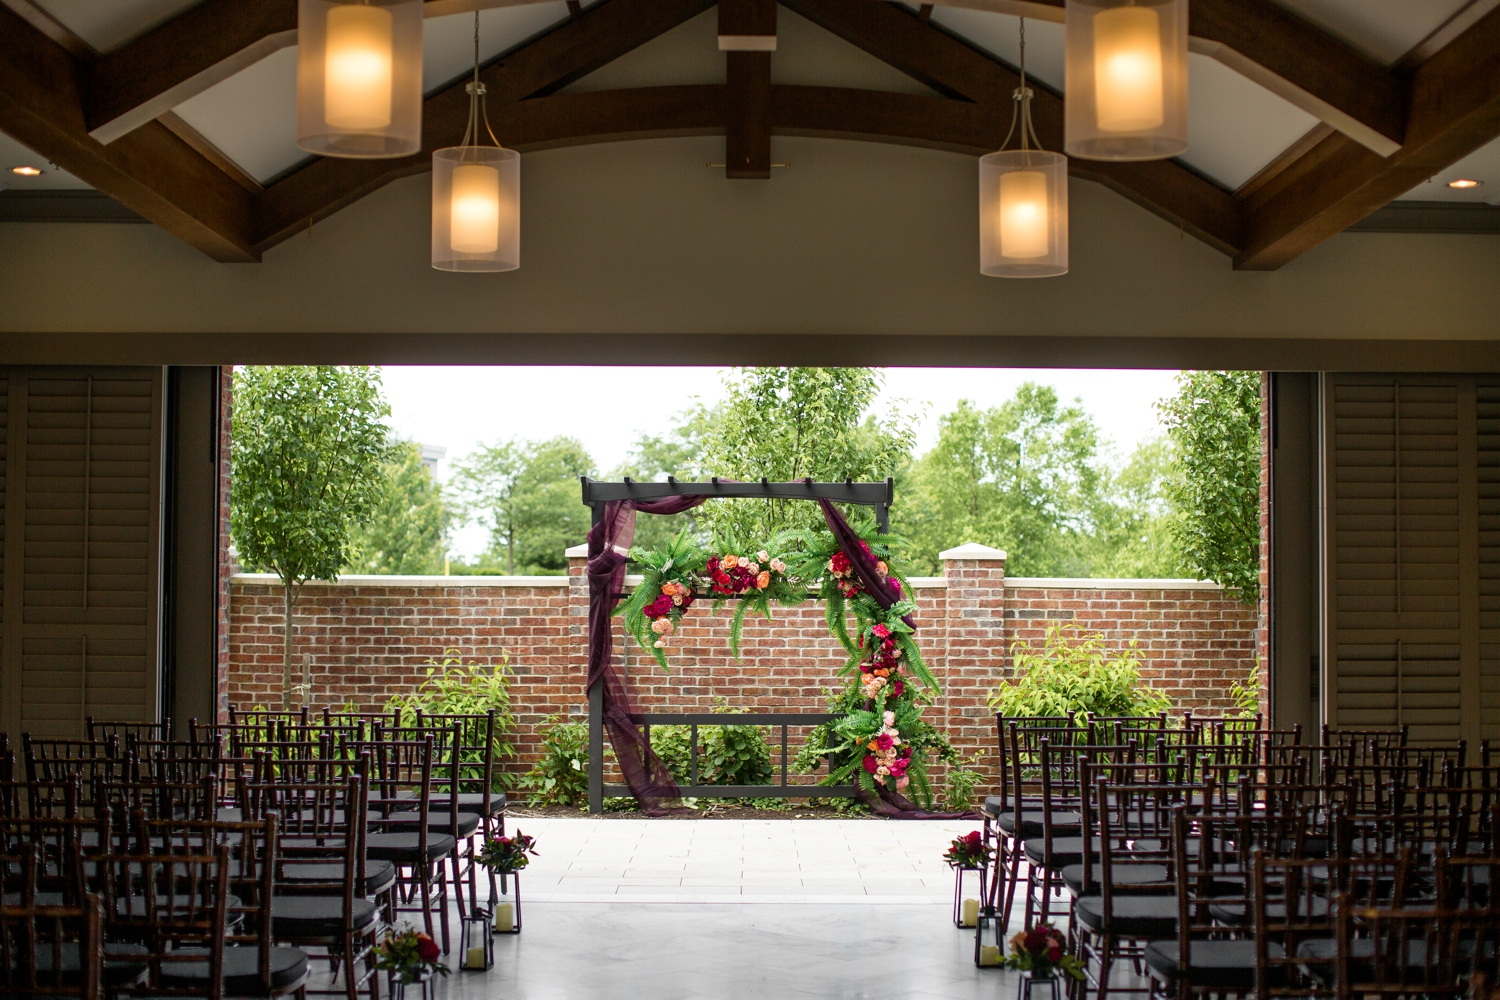 noah's event venue cranberry township pa wedding, pittsburgh wedding photographer, pittsburgh wedding venues, pittsburgh engagement photographer, cranberry township wedding venues